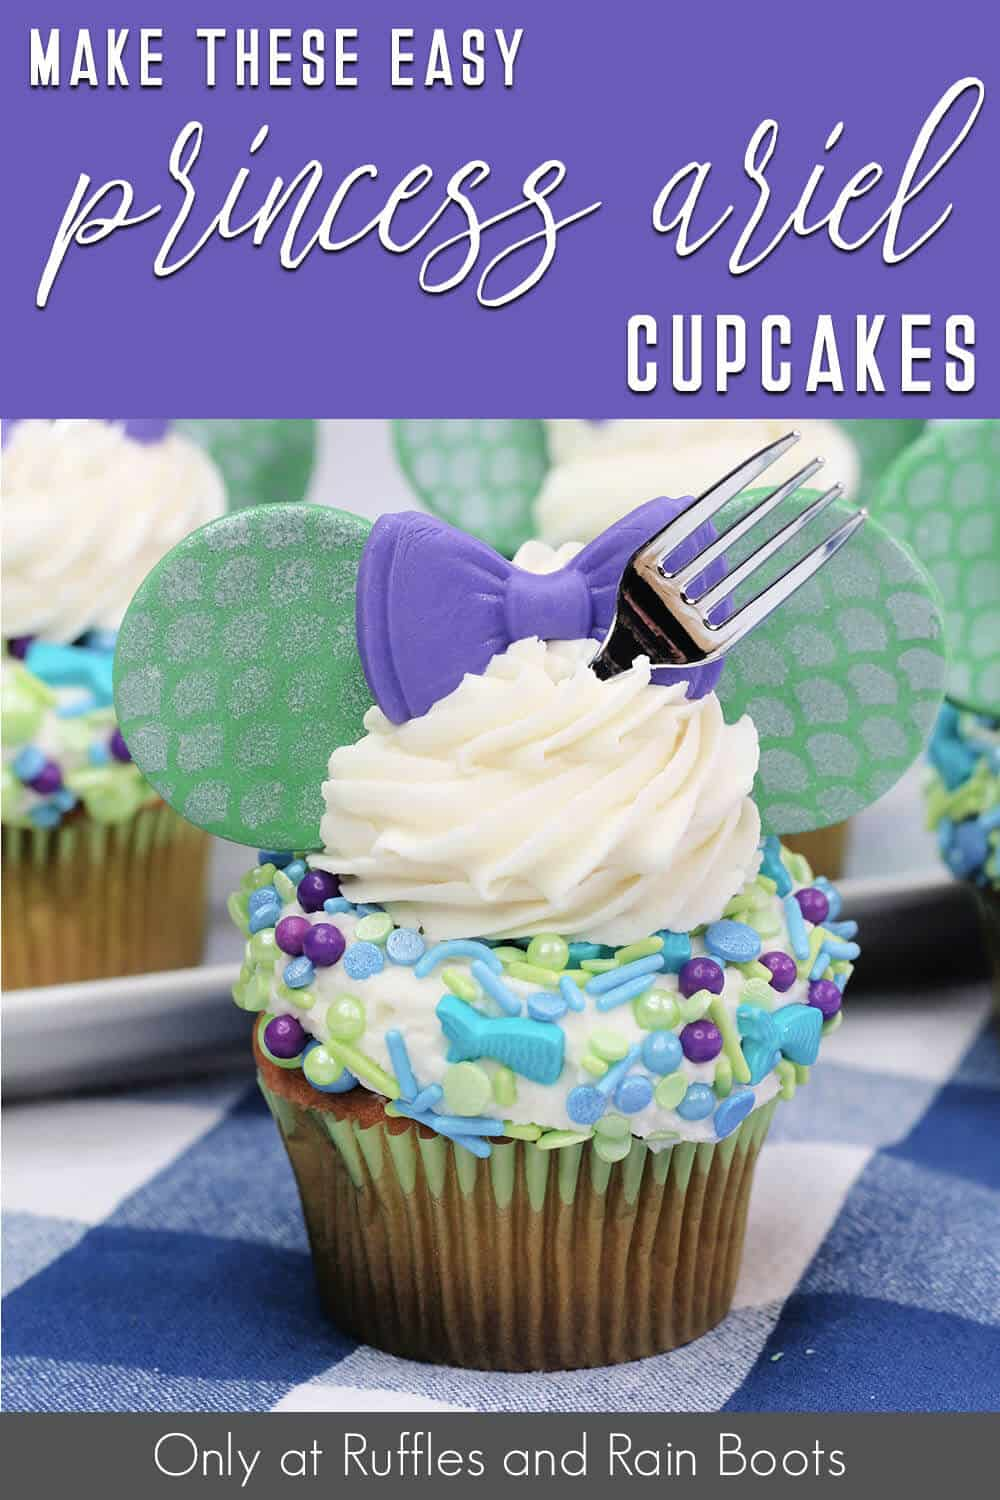 disney little mermaid princess ariel cupcakes with text which reads make these easy princes ariel cupcakes